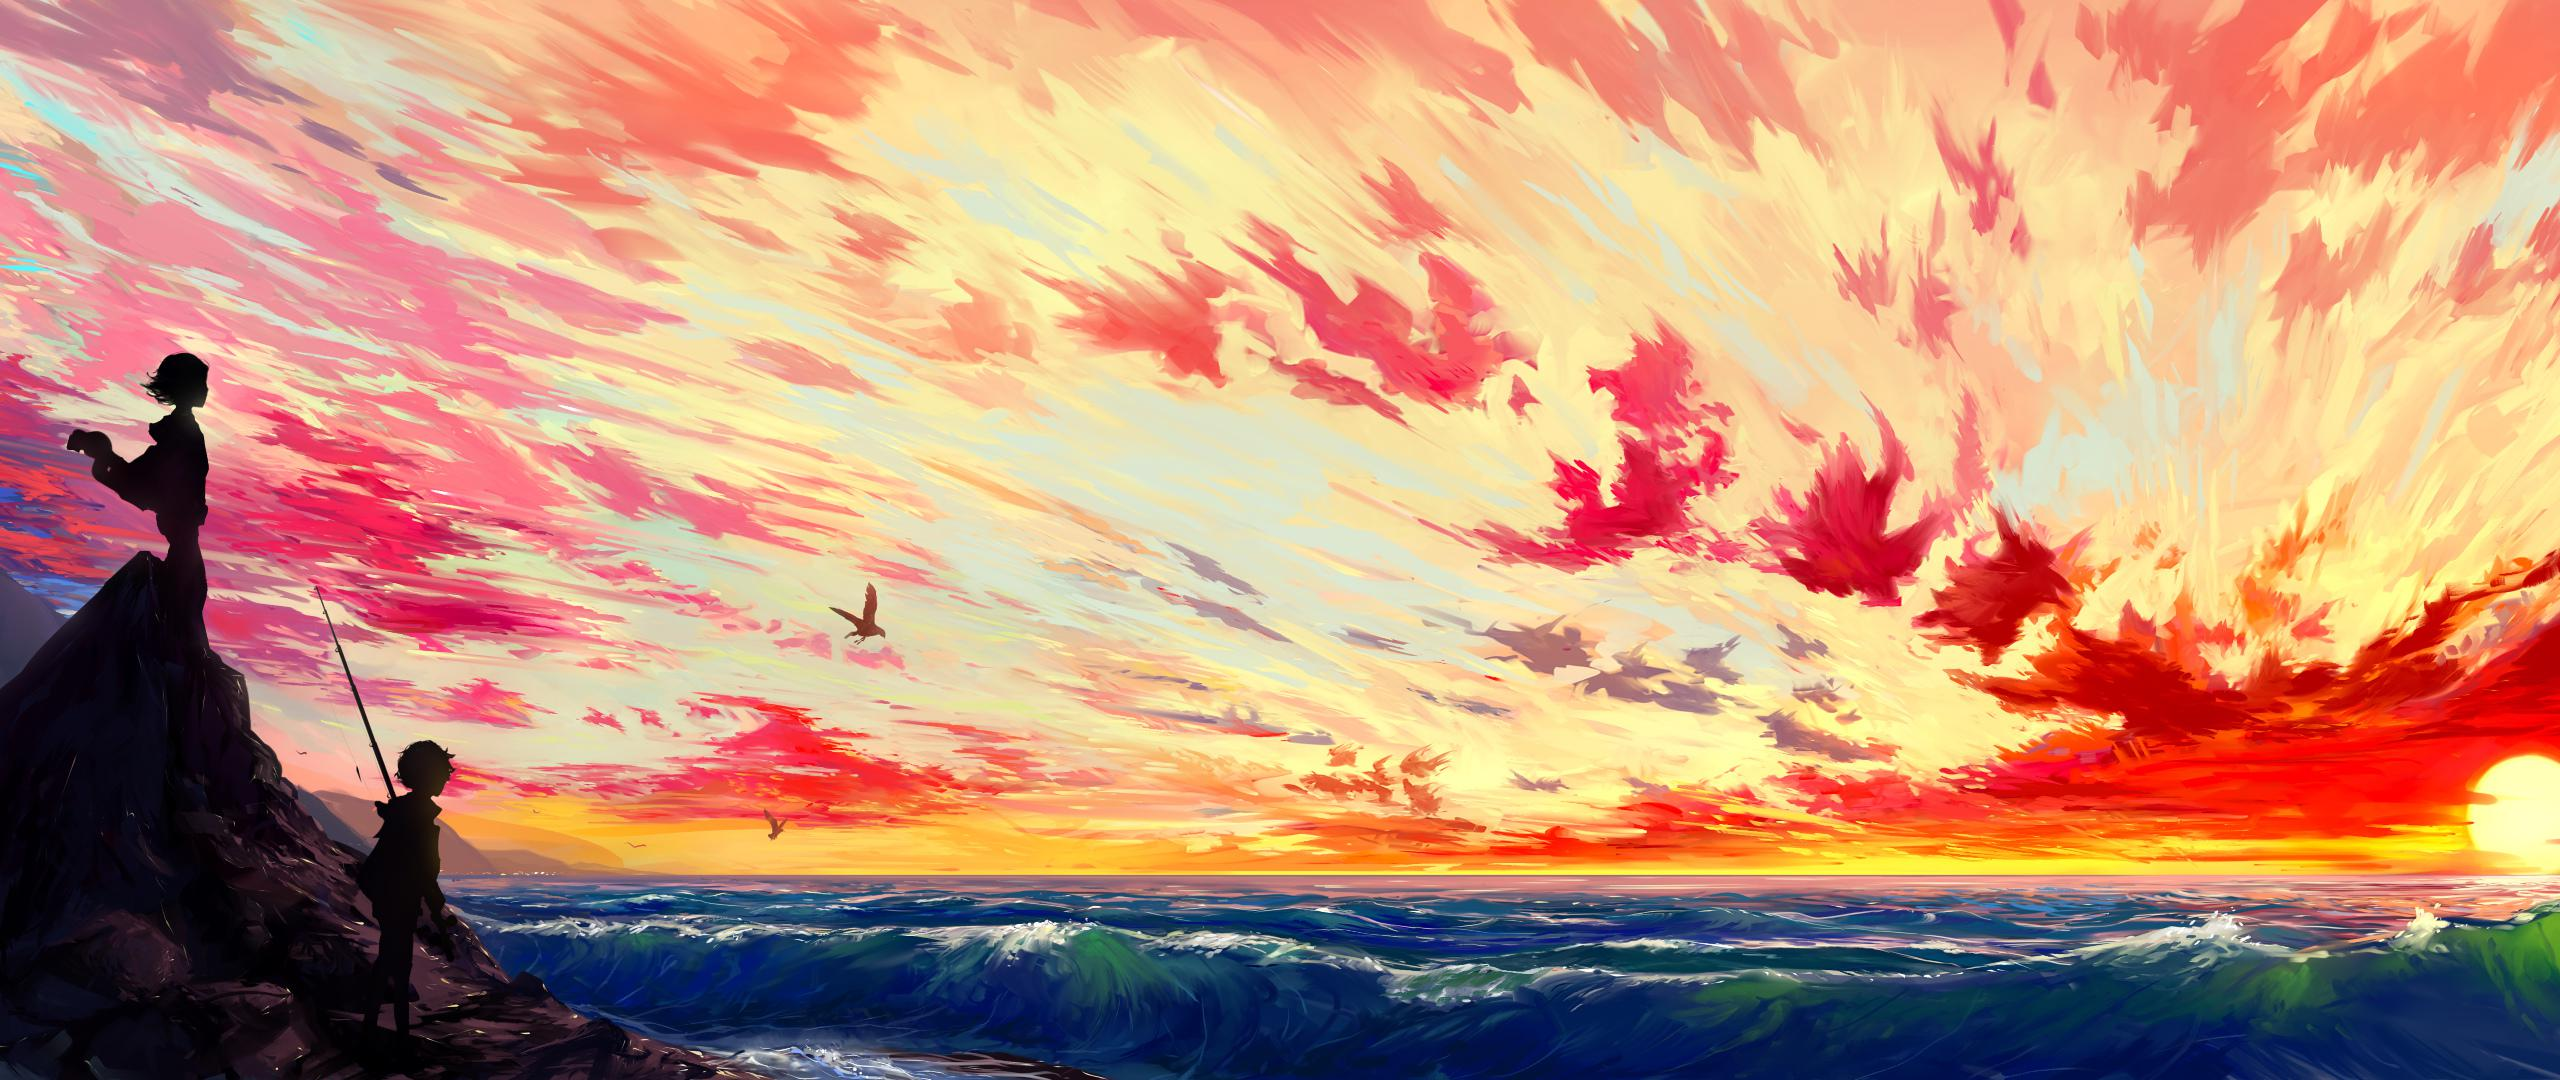 Anime 4k Wallpapers For Your Desktop Or Mobile Screen Free And Easy To Download